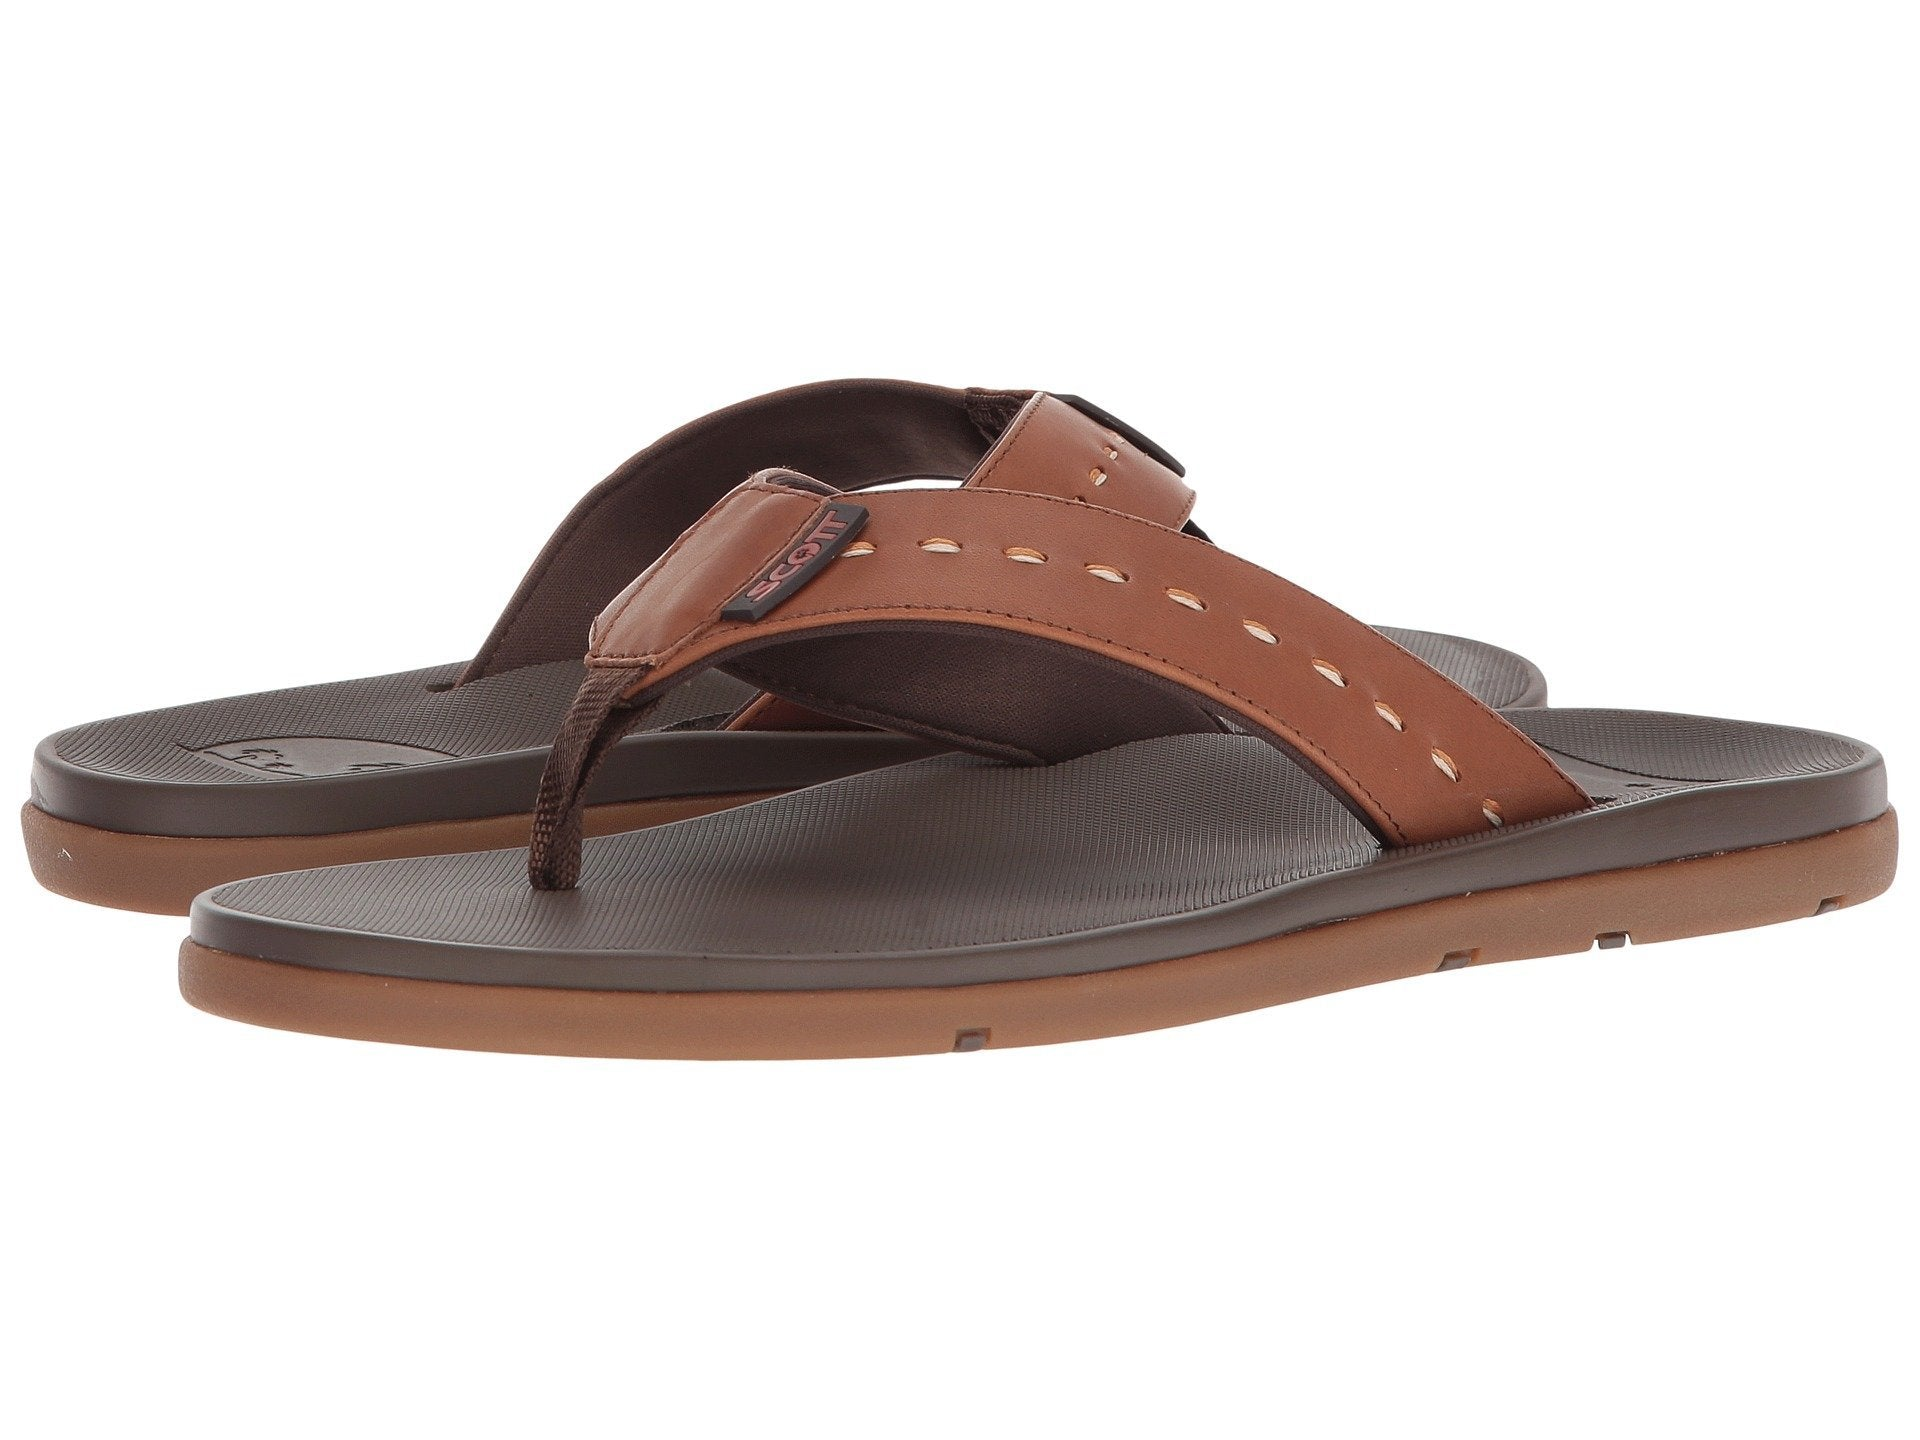 Scott Hawaii Sophisticated Alika Leather Chestnut Brown Sandal - AlohaShoes.com